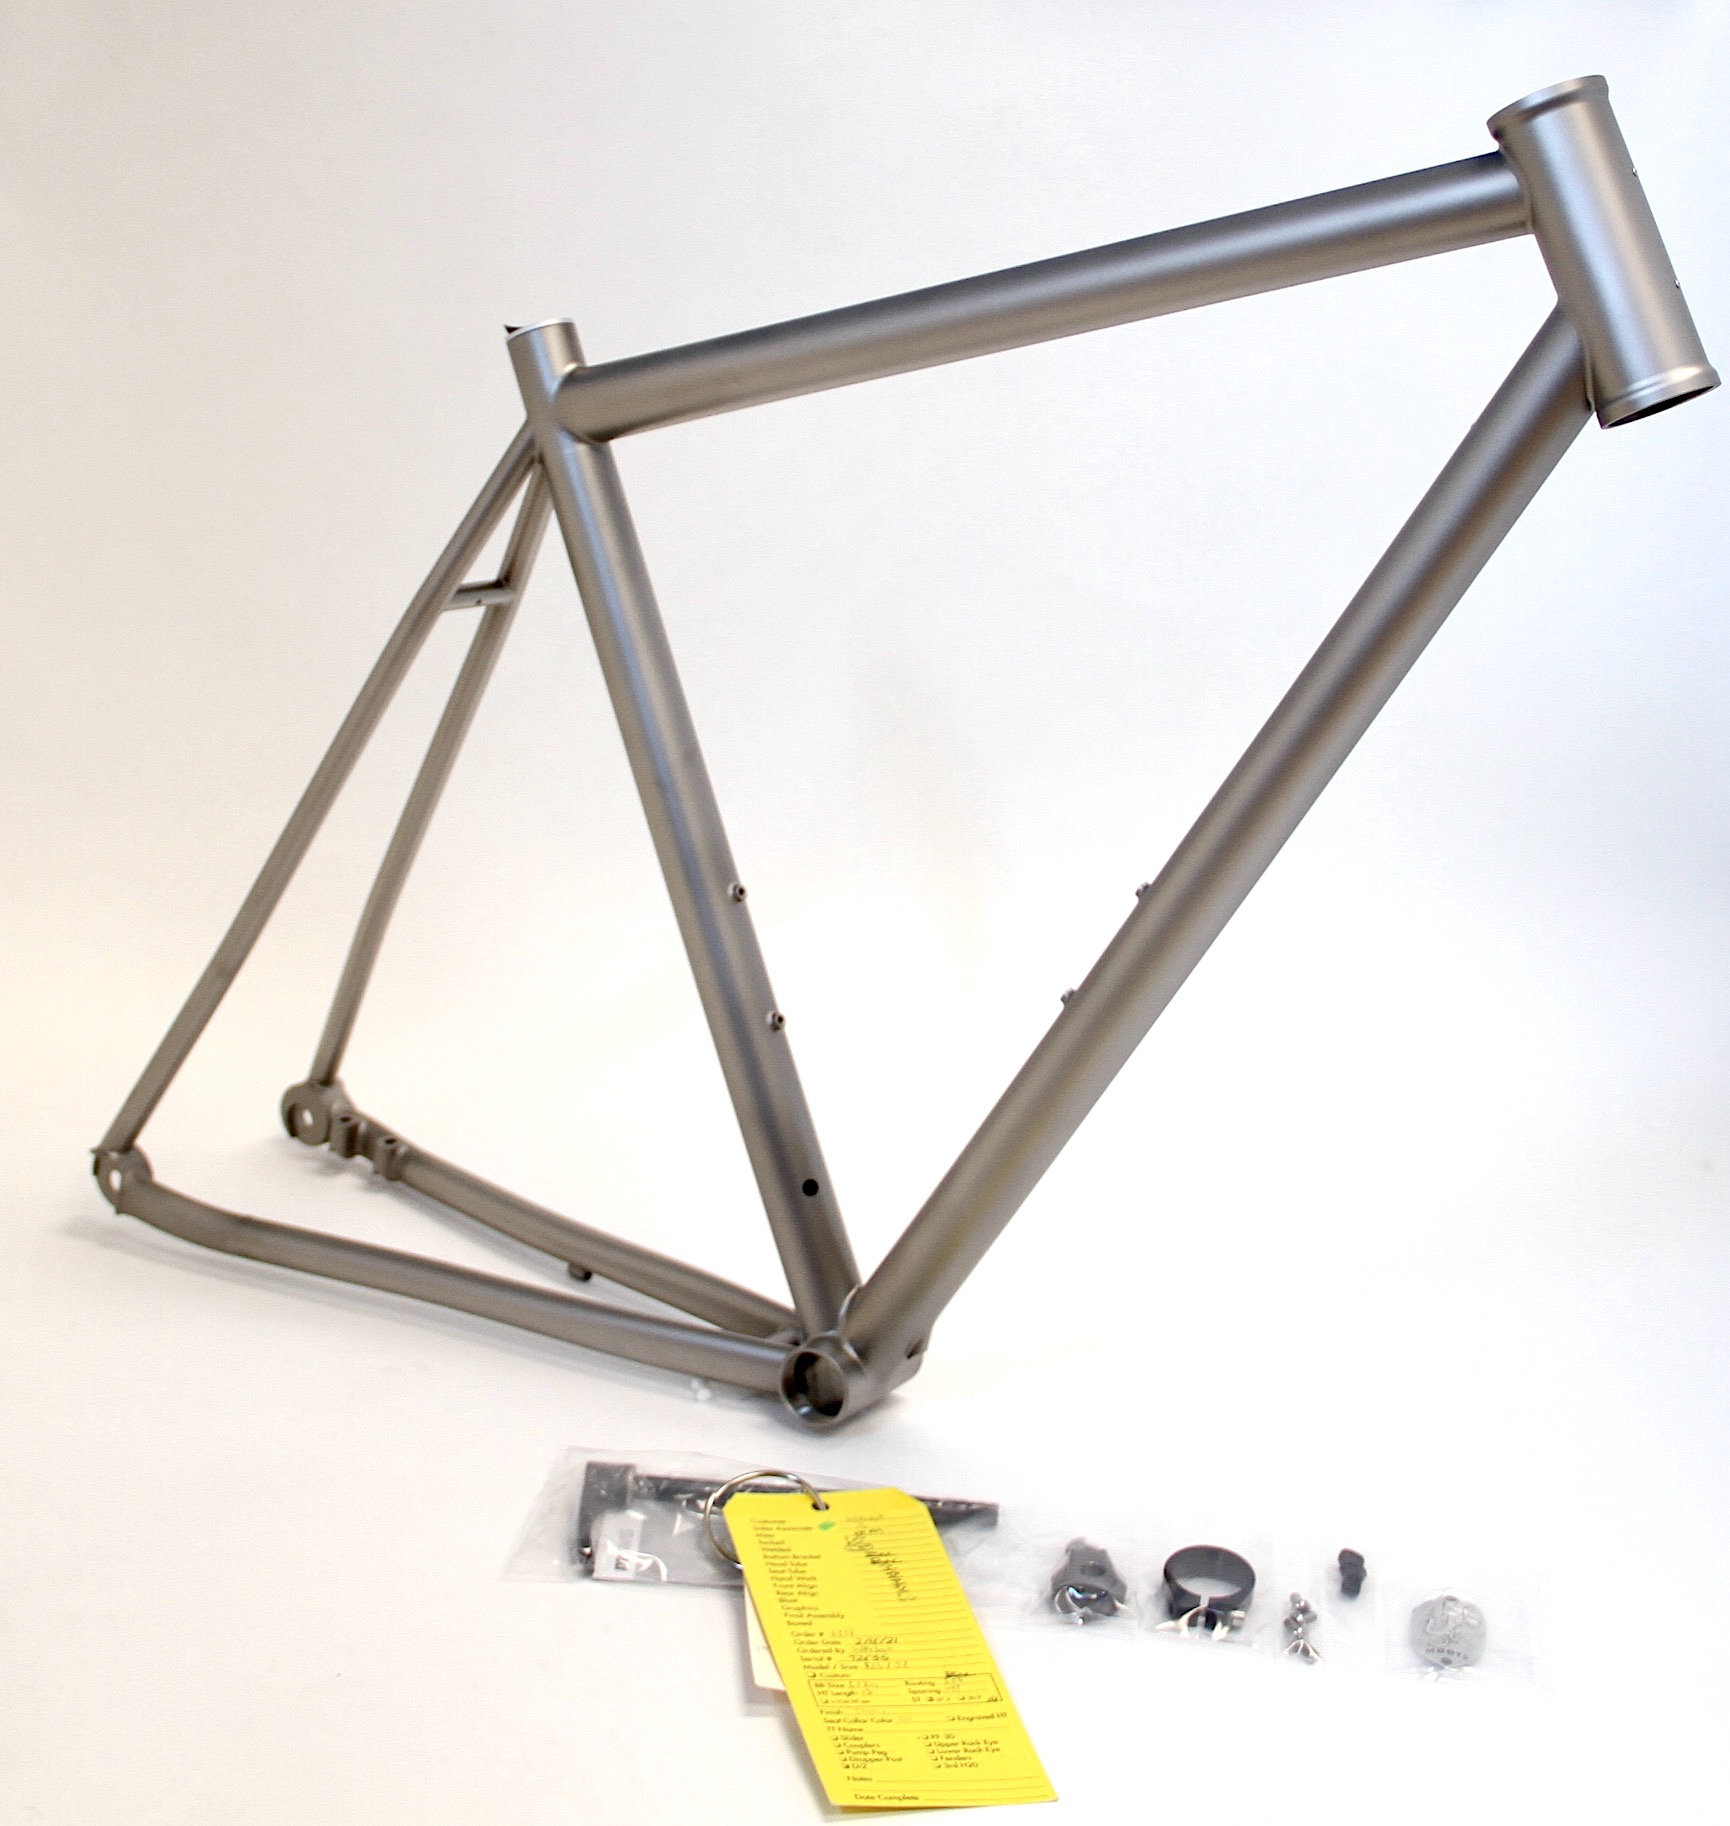 Fully blasted frame ready for paint